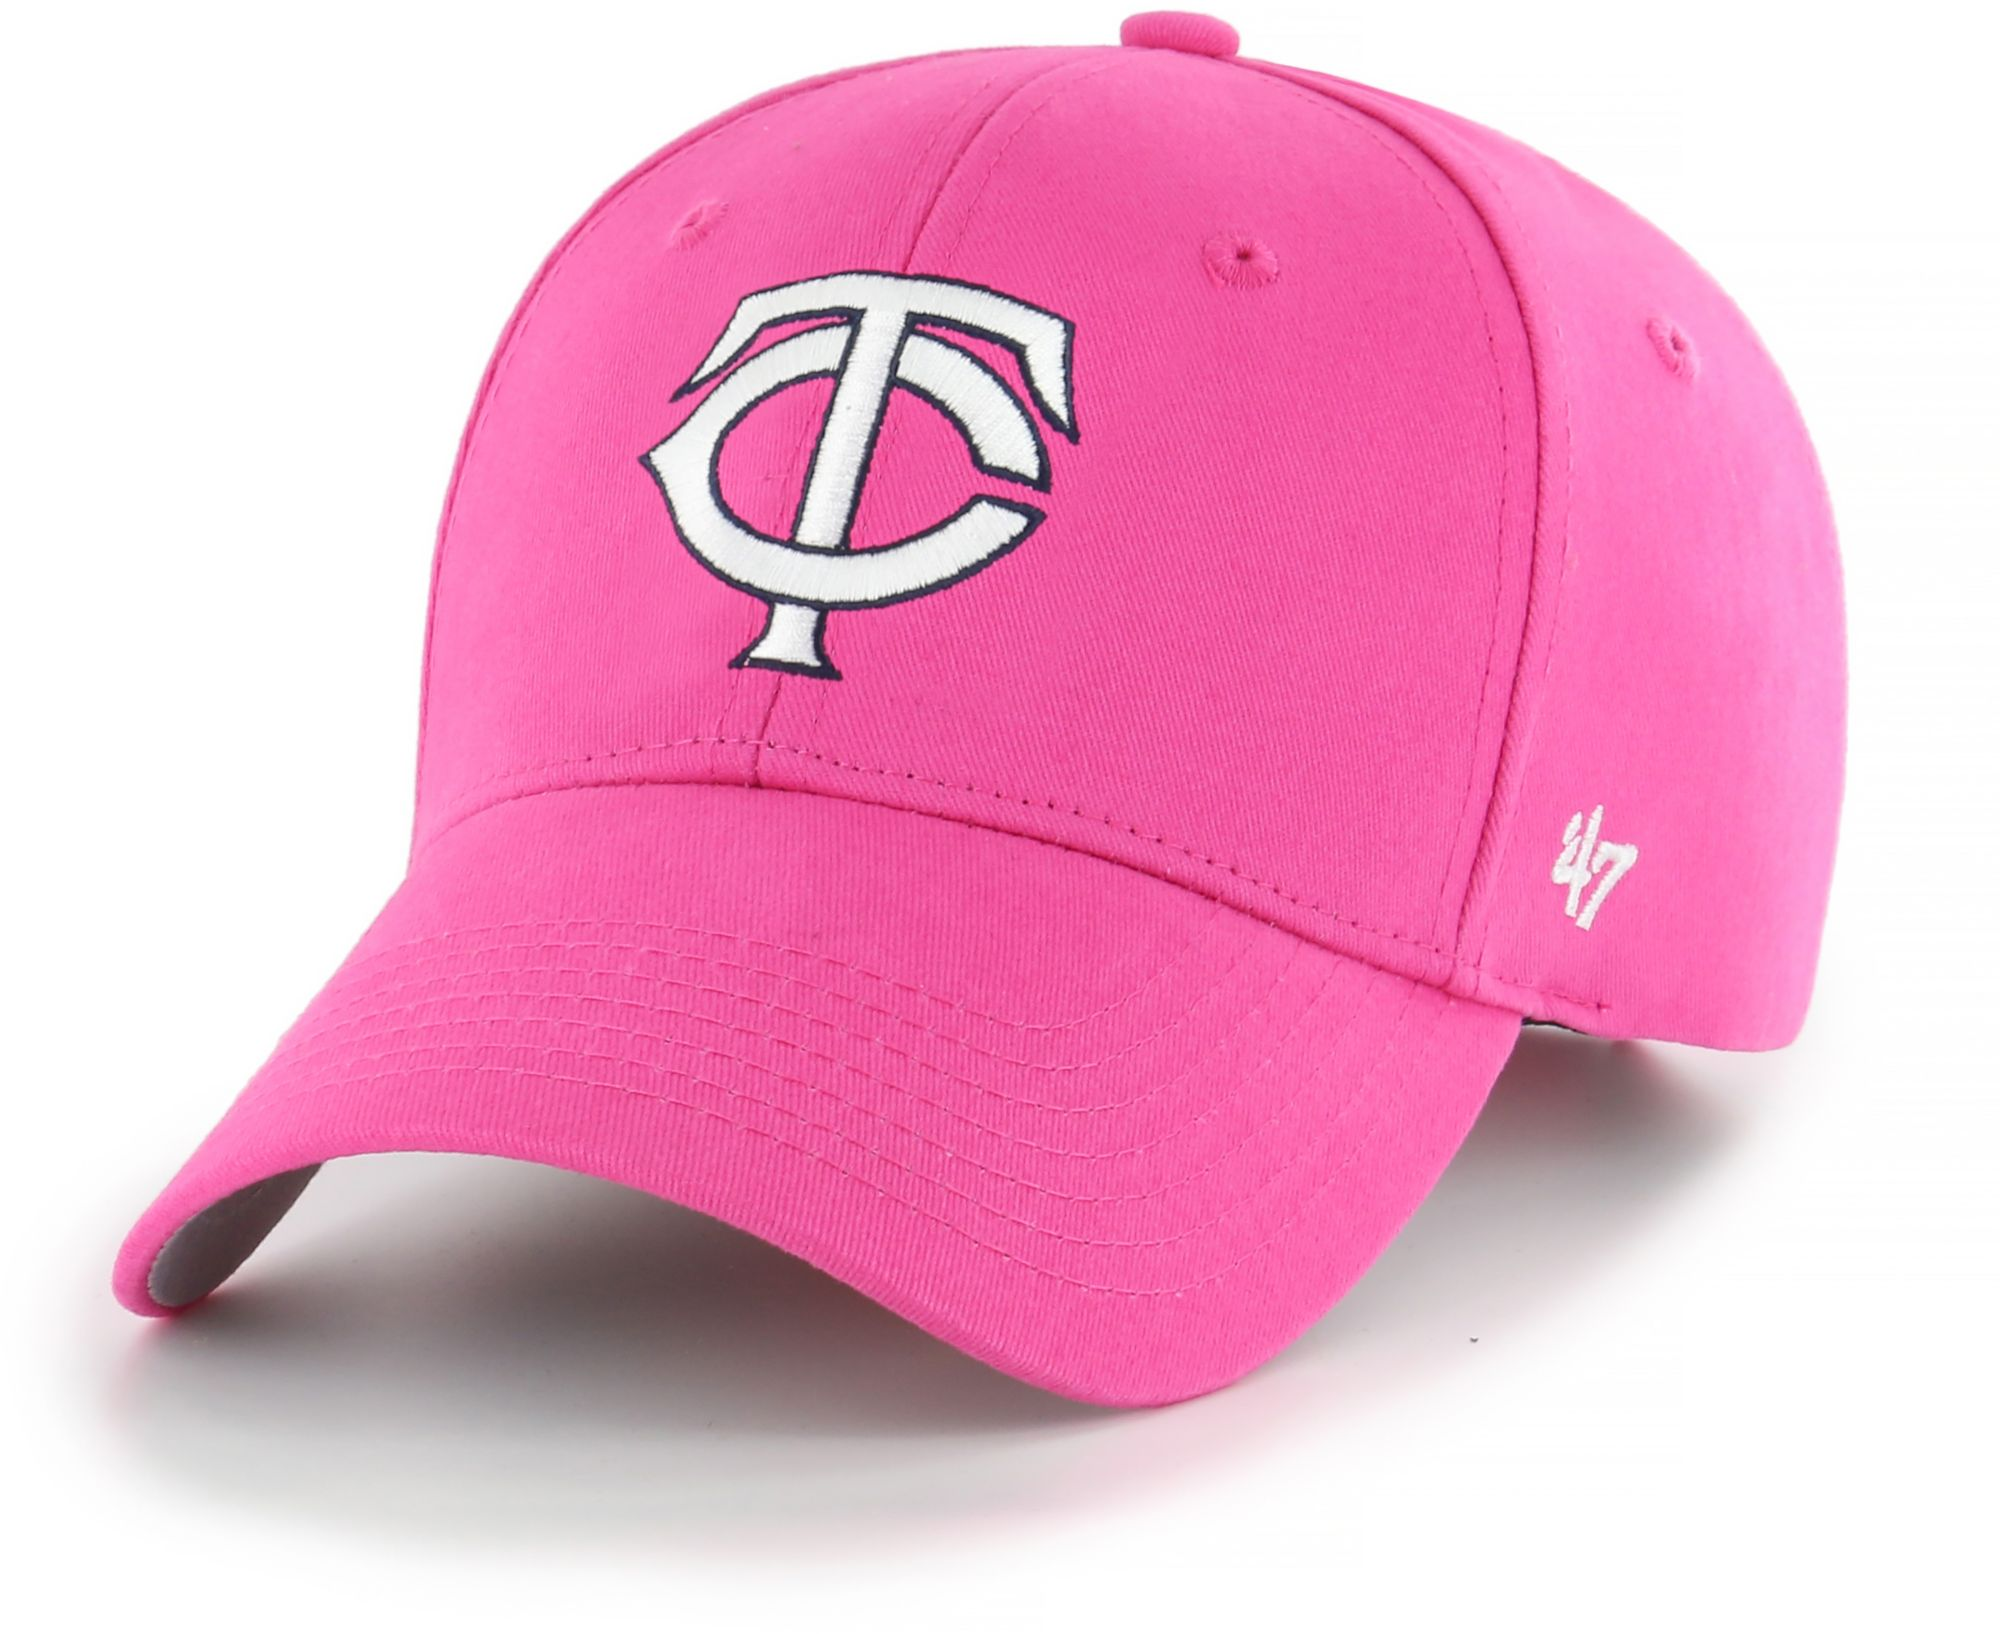 pretty nice 4147e 20d34 ... discount code for 47 youth girls minnesota twins basic pink adjustable  hat de2fc 77068